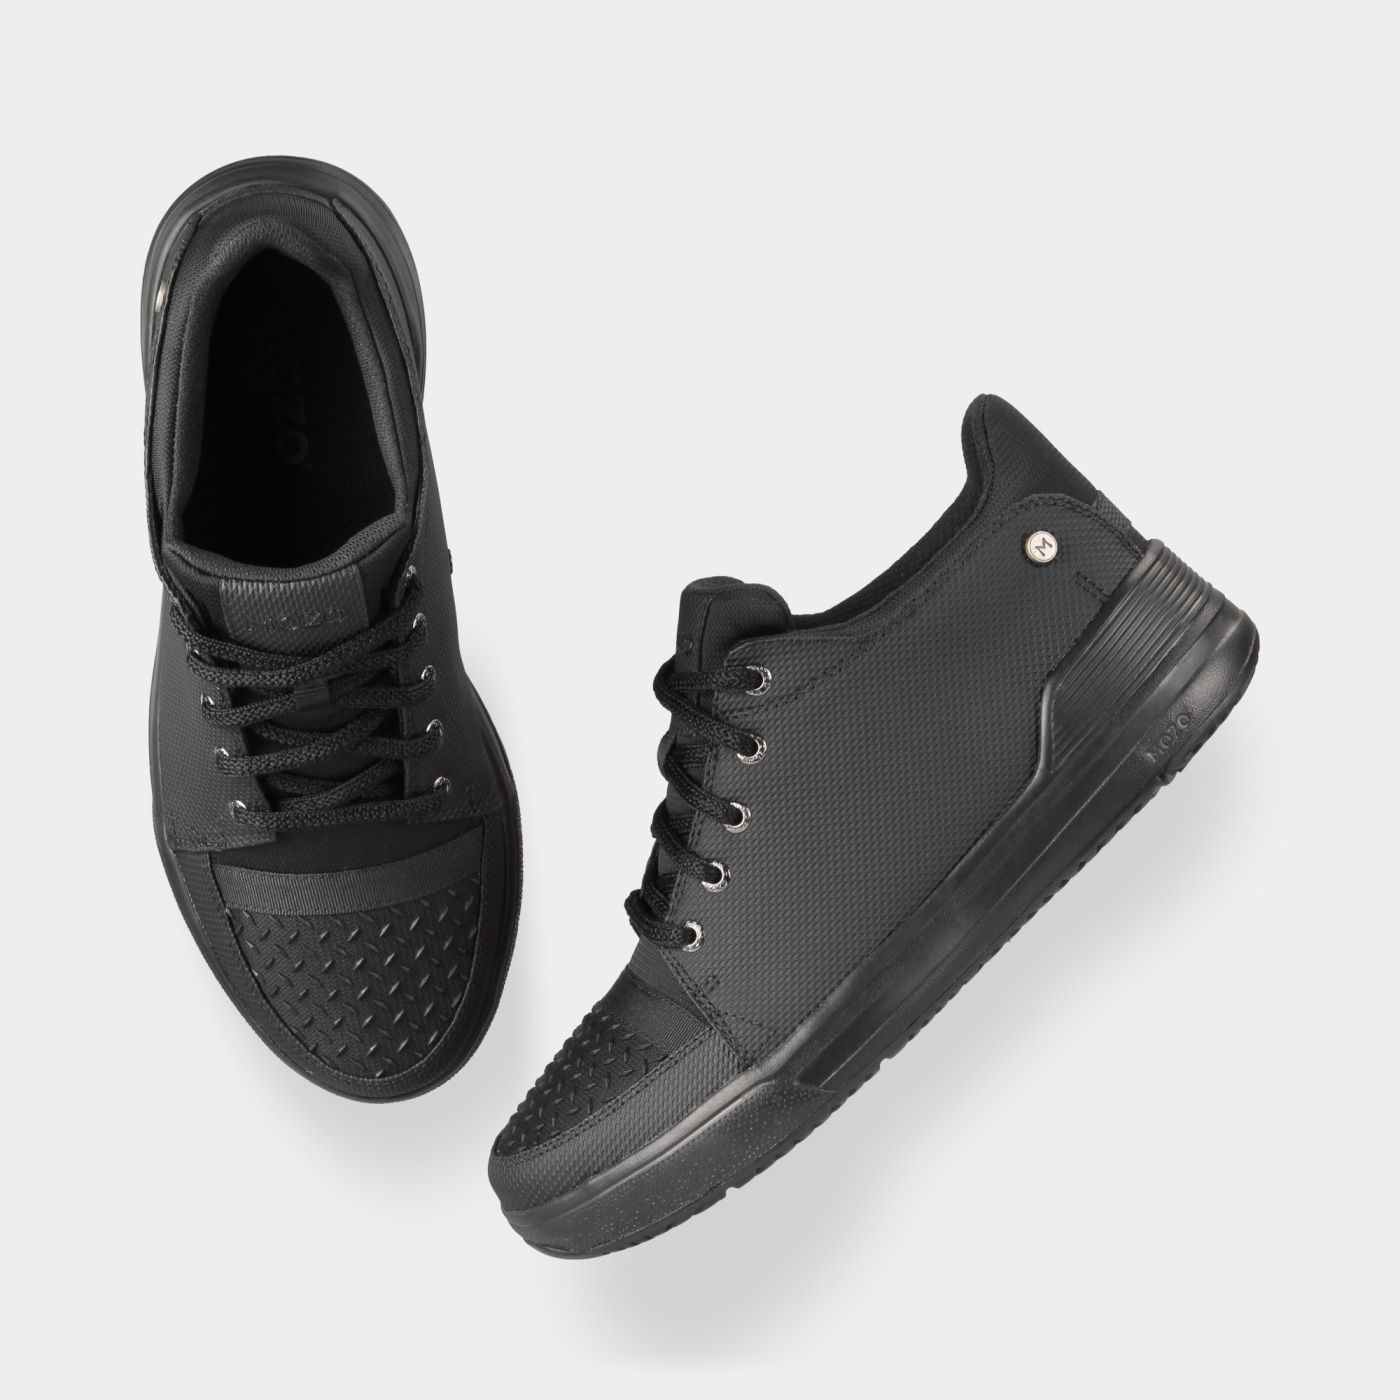 MOZO's Gallant is a slip resistant kitchen shoe with ...